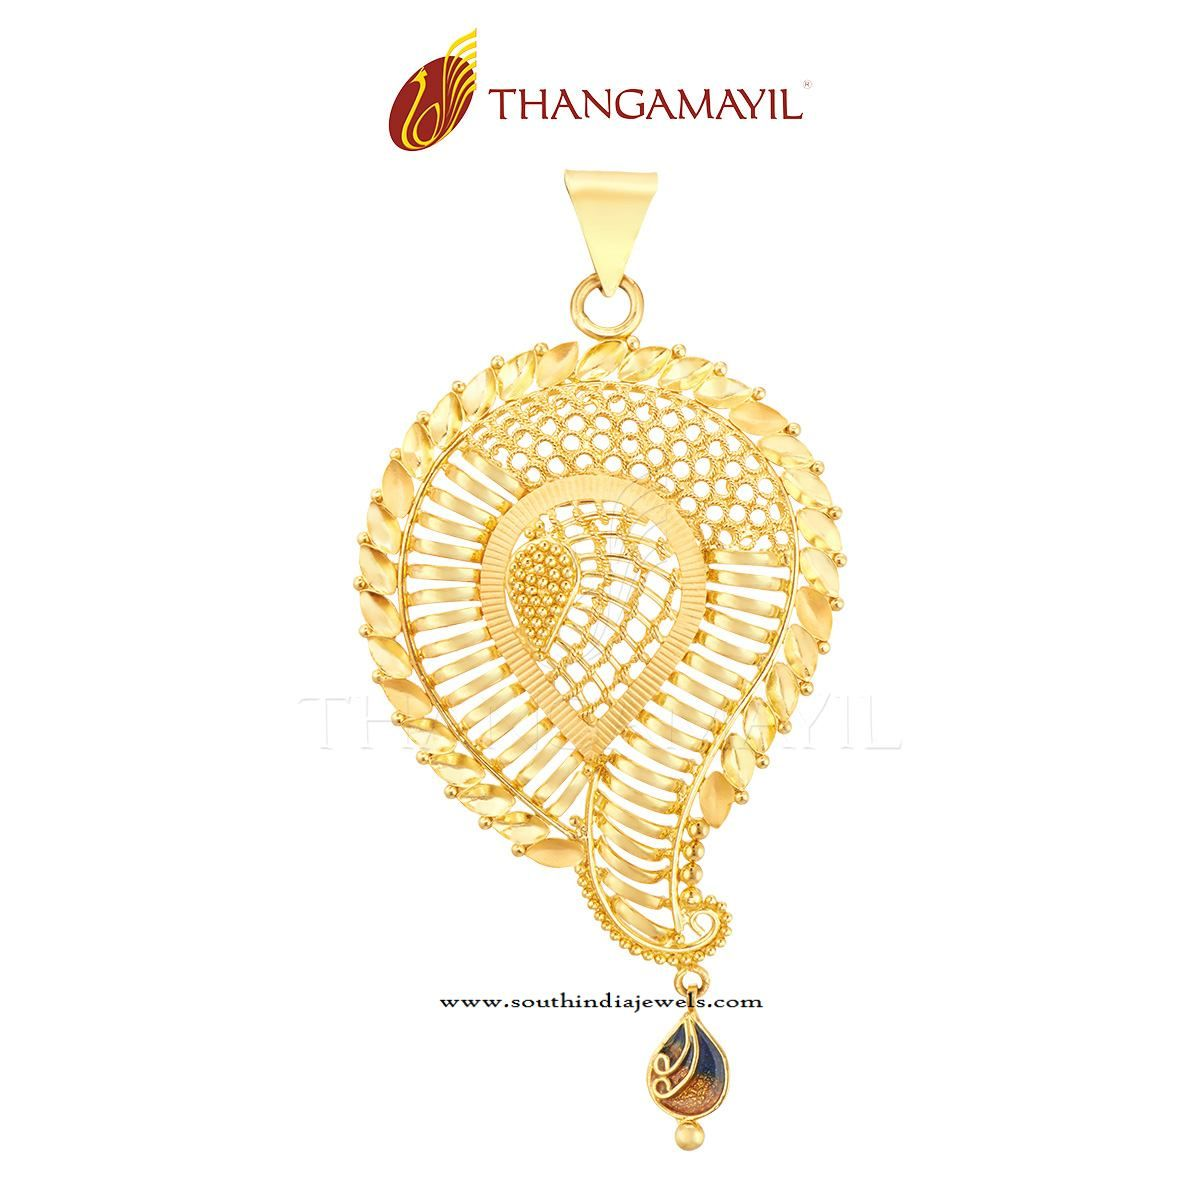 22K Gold Designer Gold Pendant | Gold pendant, Pendants and Gold